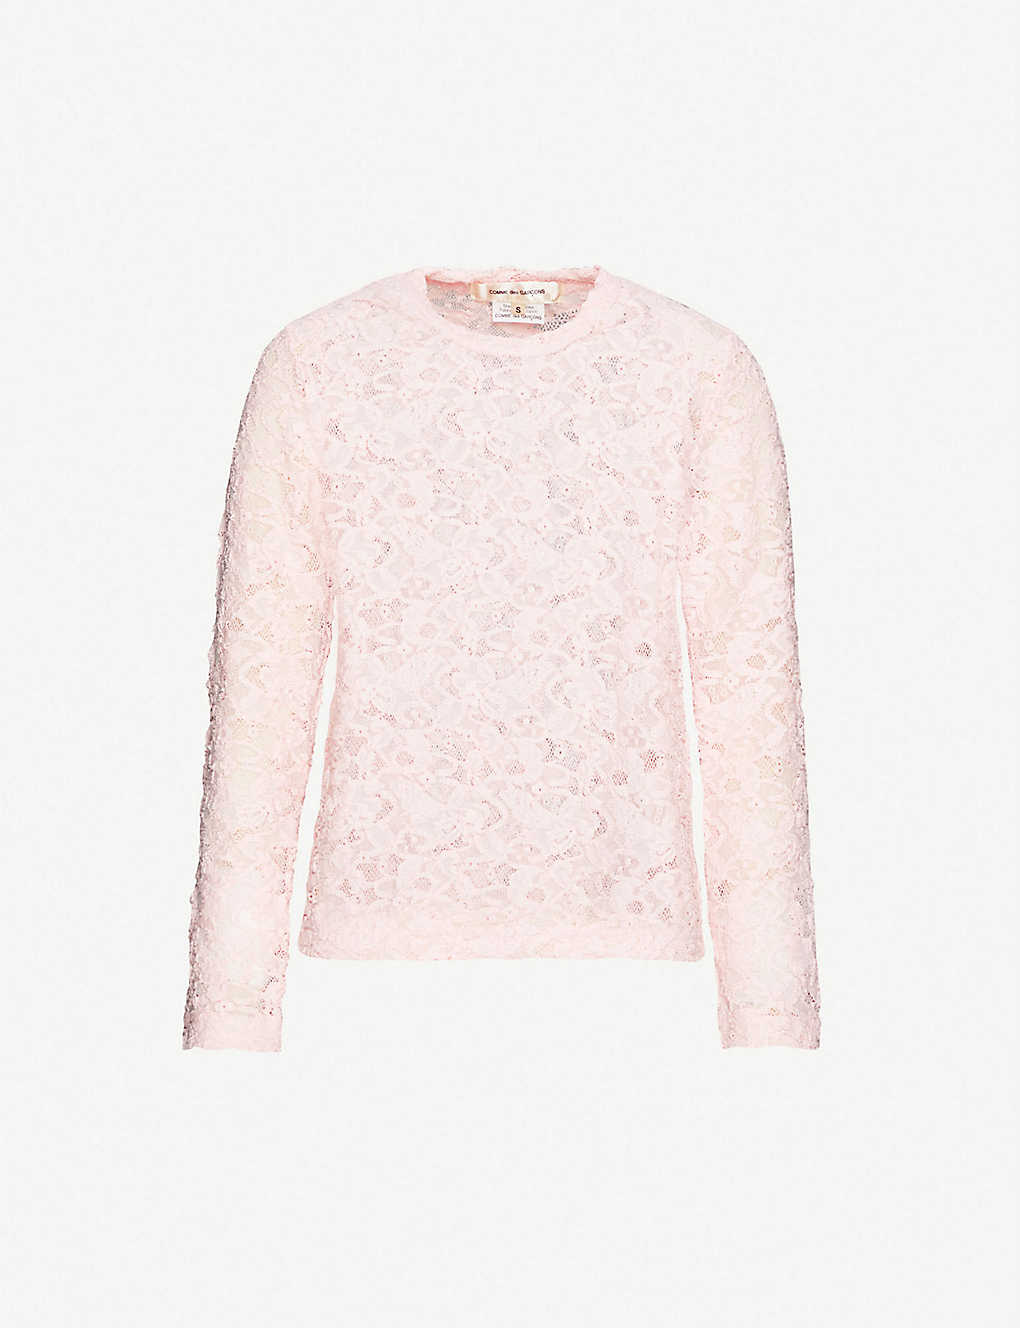 COMME DES GARCONS: Floral-embroidered lace top